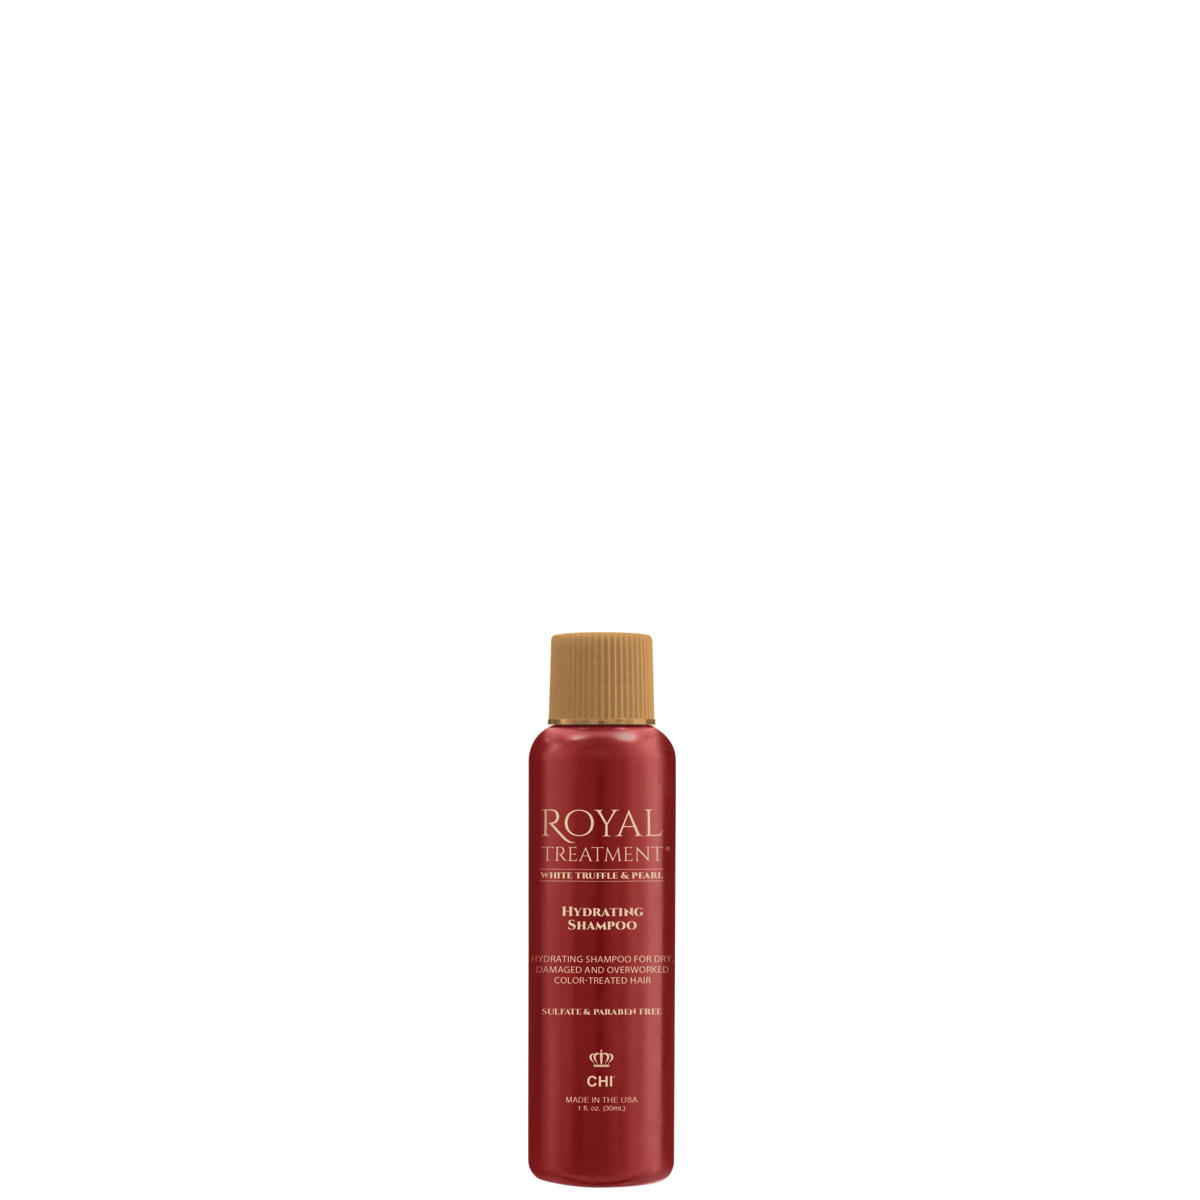 Royal-Treatment-Hydrating-Shampoo